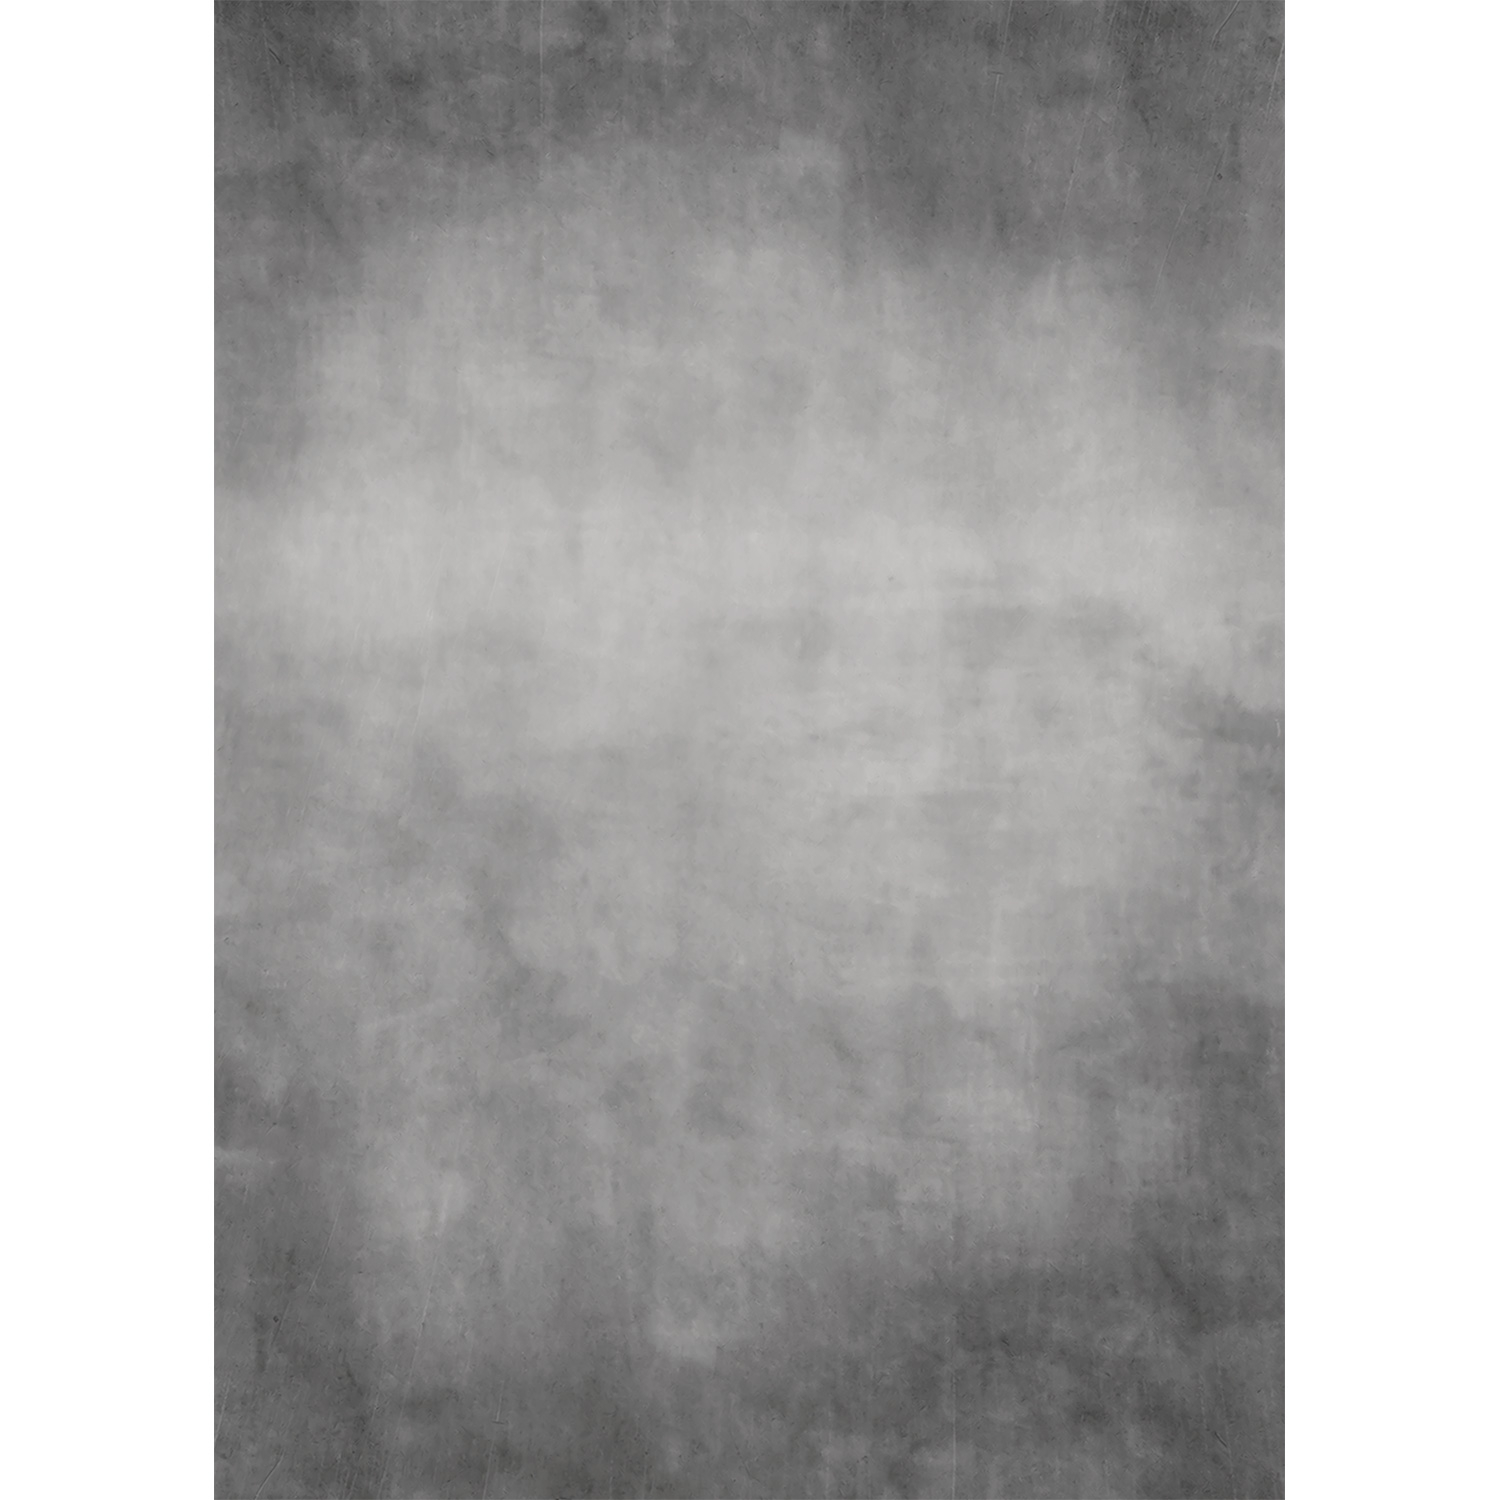 X-Drop Vinyl Backdrop - Vintage Gray by Glyn Dewis (5' x 7')